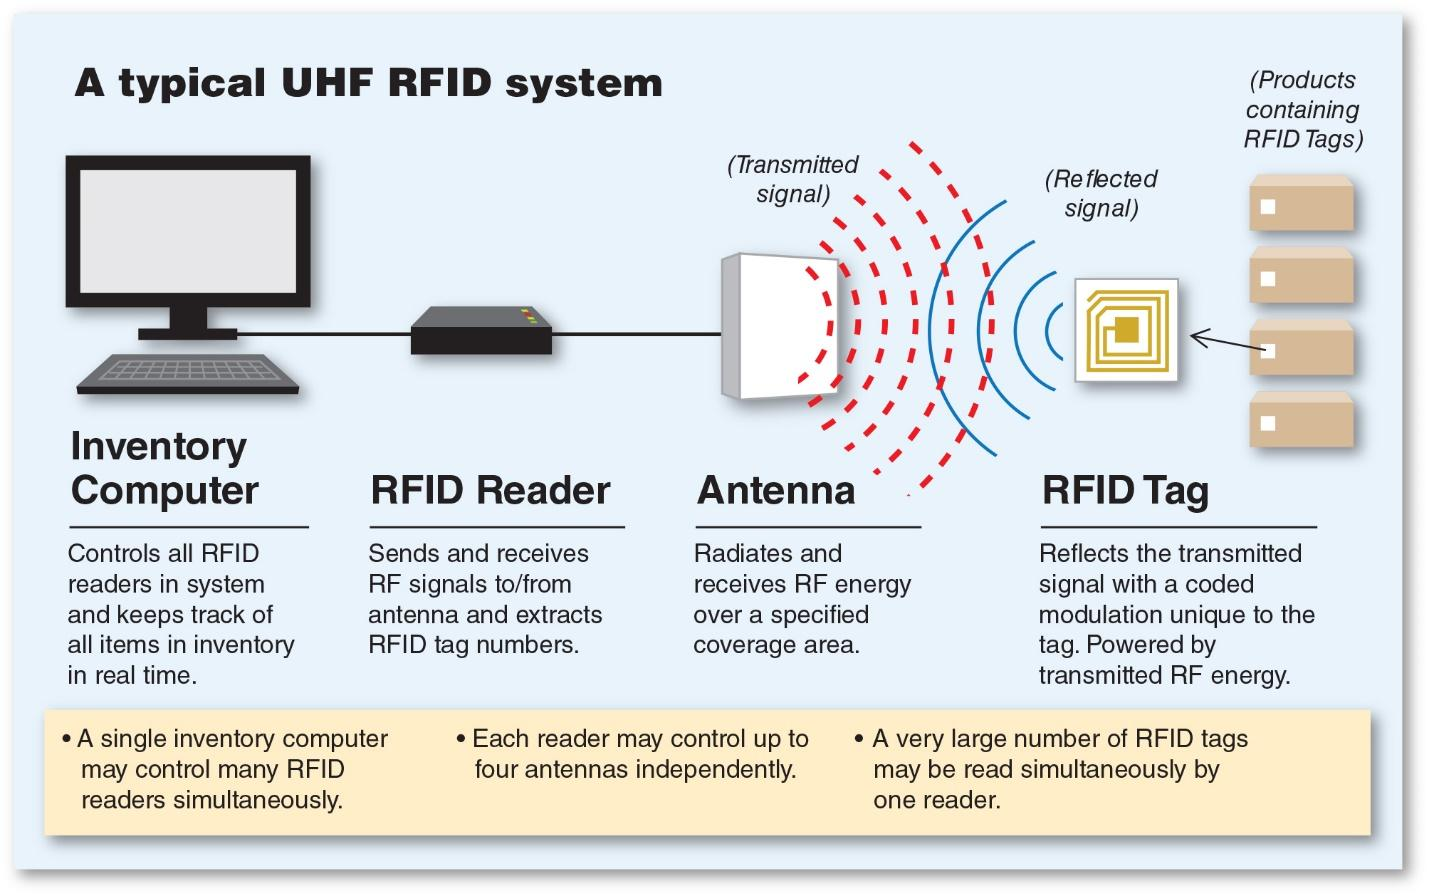 The working principle and application scenario of RFID technology